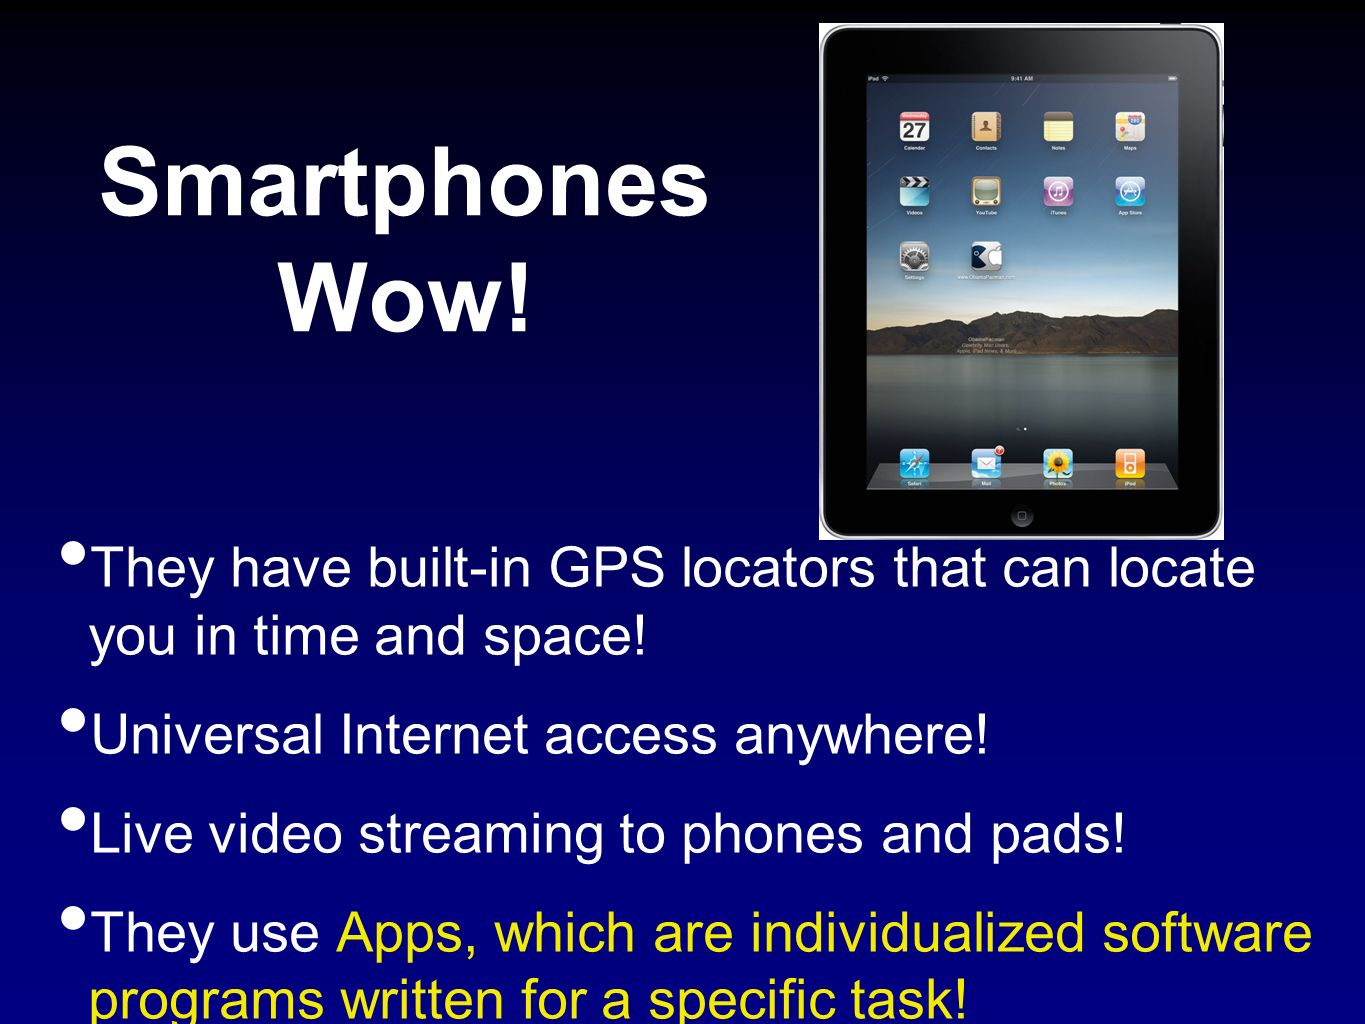 Smartphones Wow!They have built-in GPS locators that can locate you in time and space! Universal Internet access anywhere!